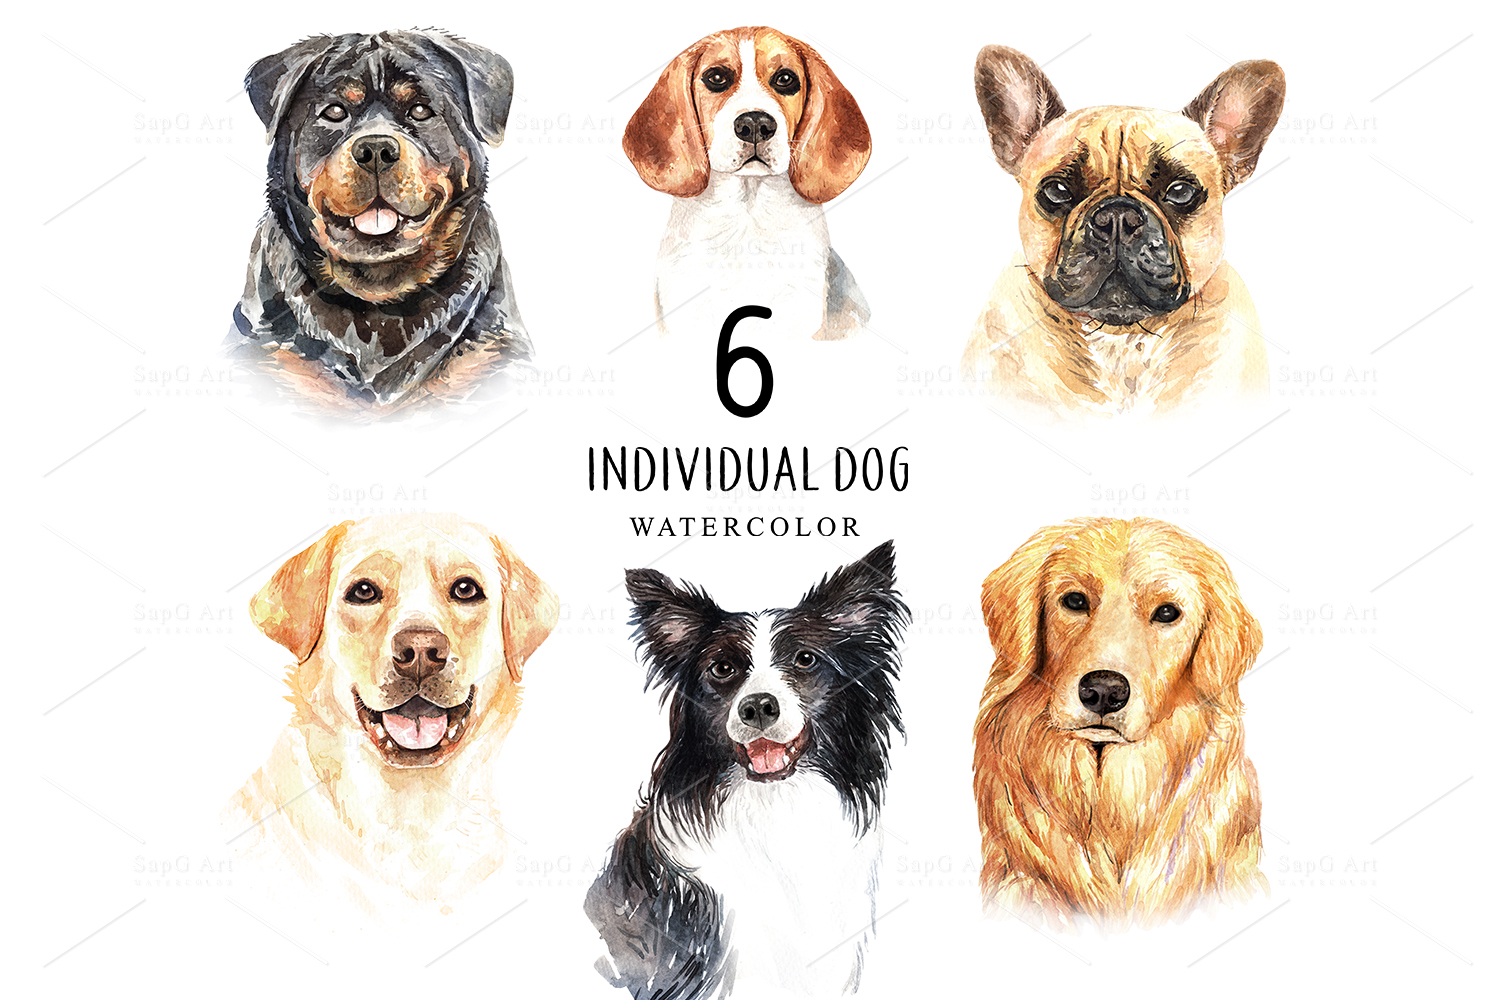 Dogs and accessories watercolor clipart, Pets clip arts SetB example image 2